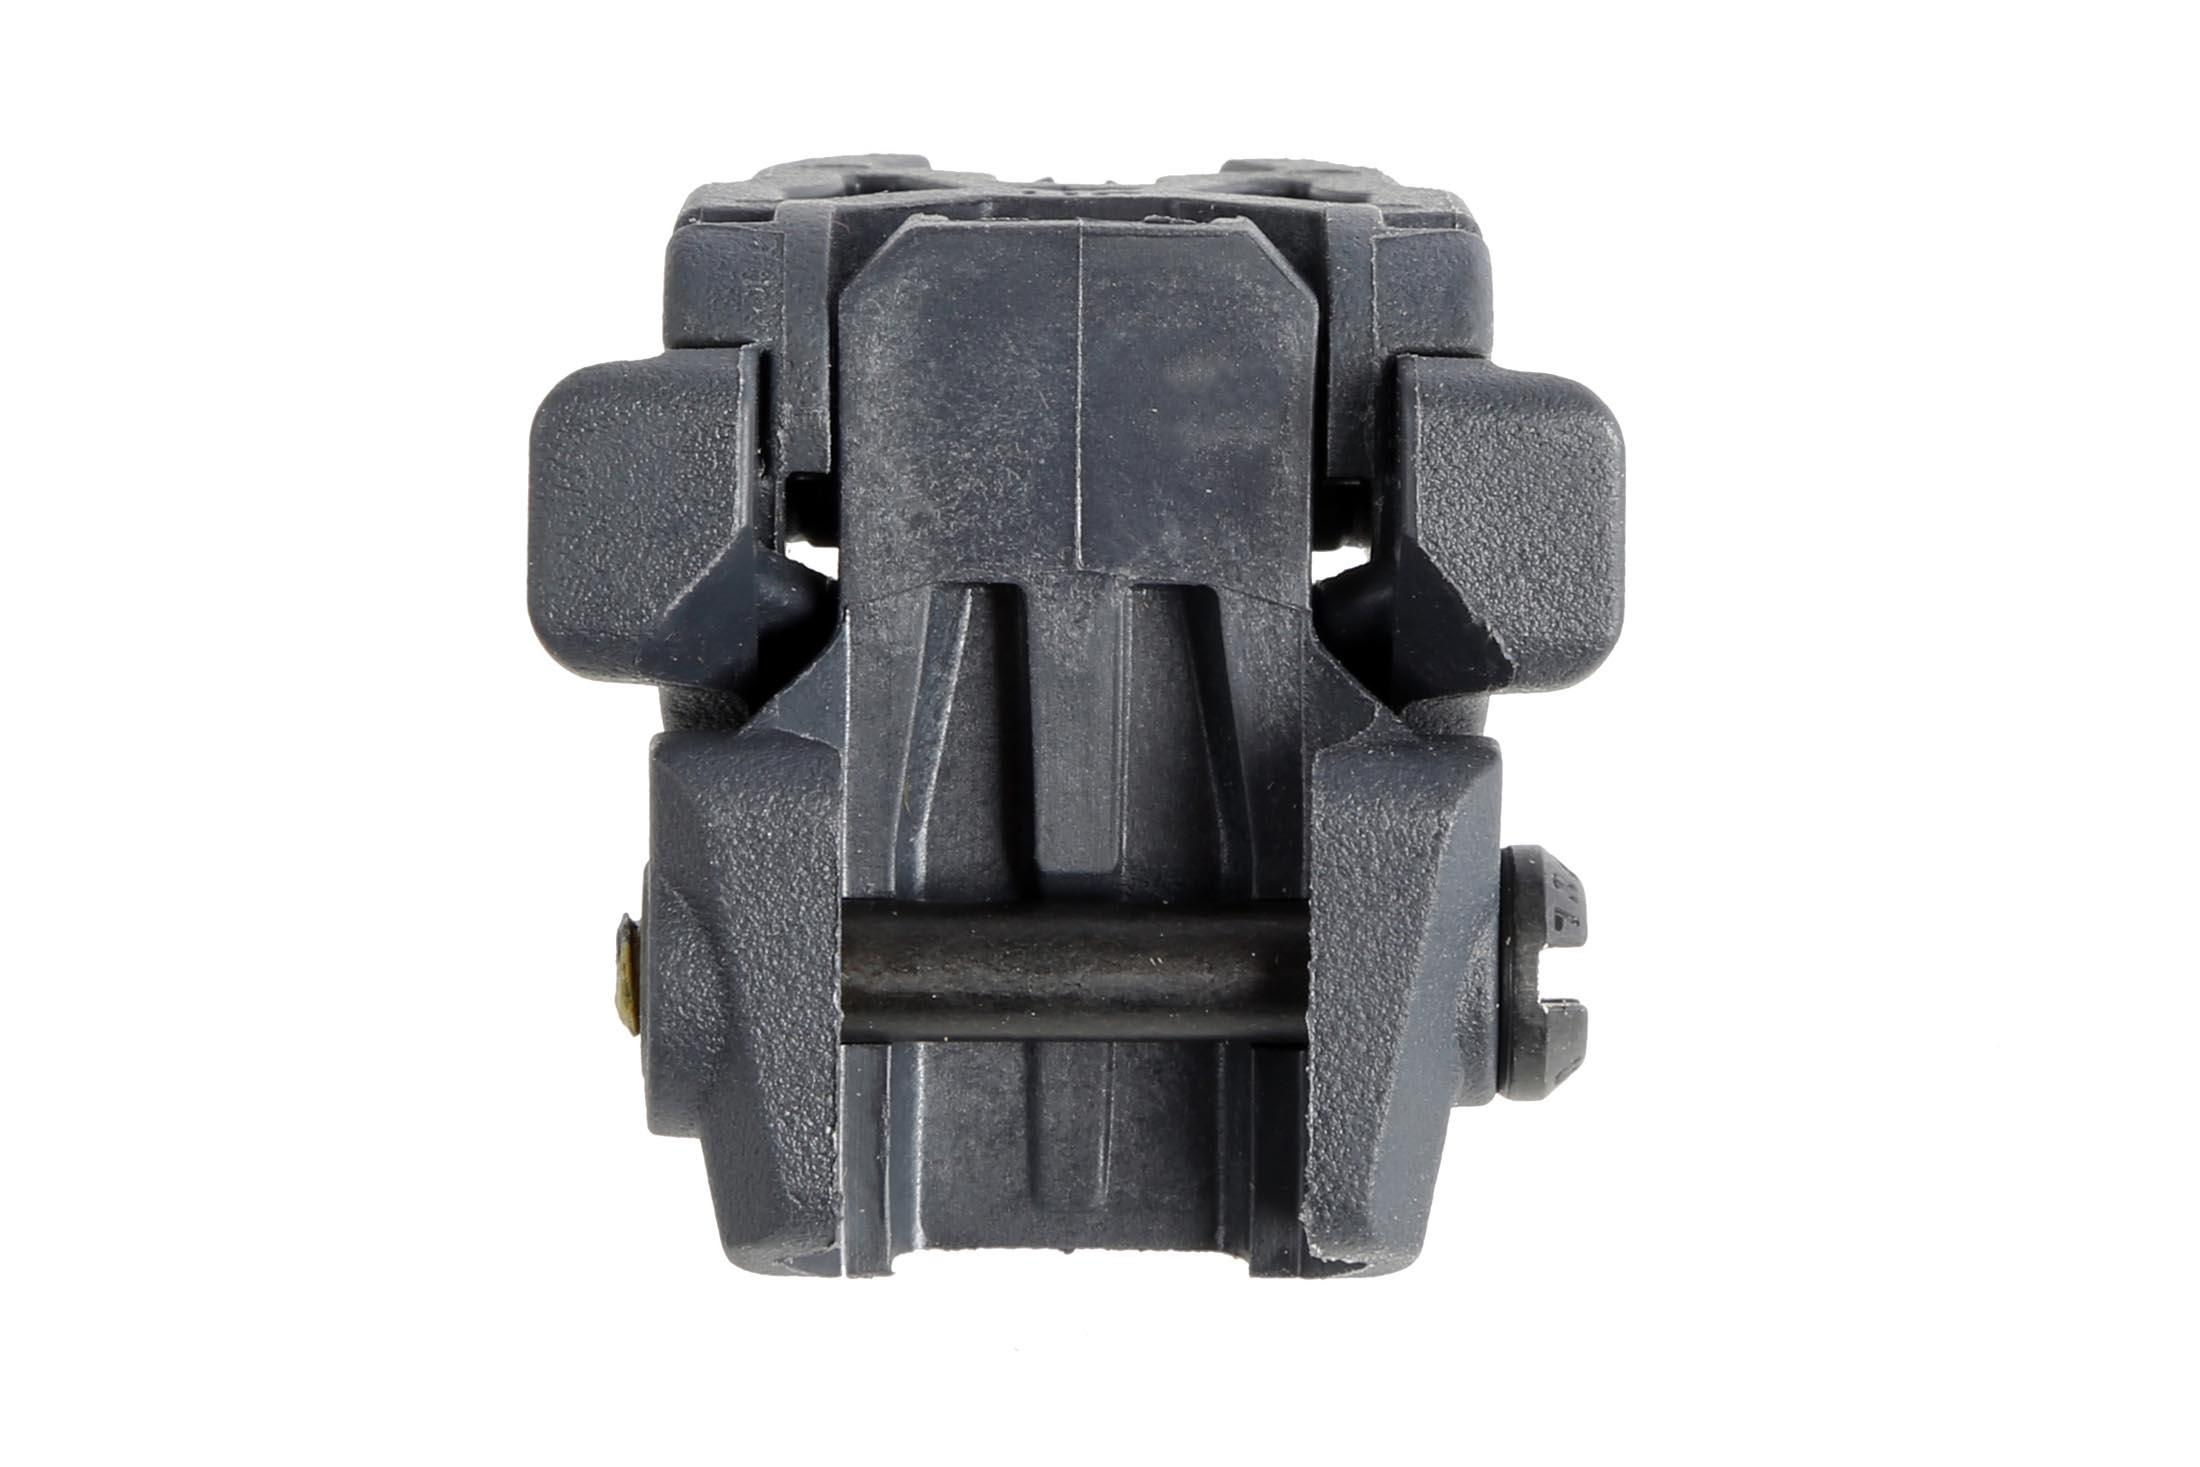 Magpul MBUS Front Sight - Stealth Gray